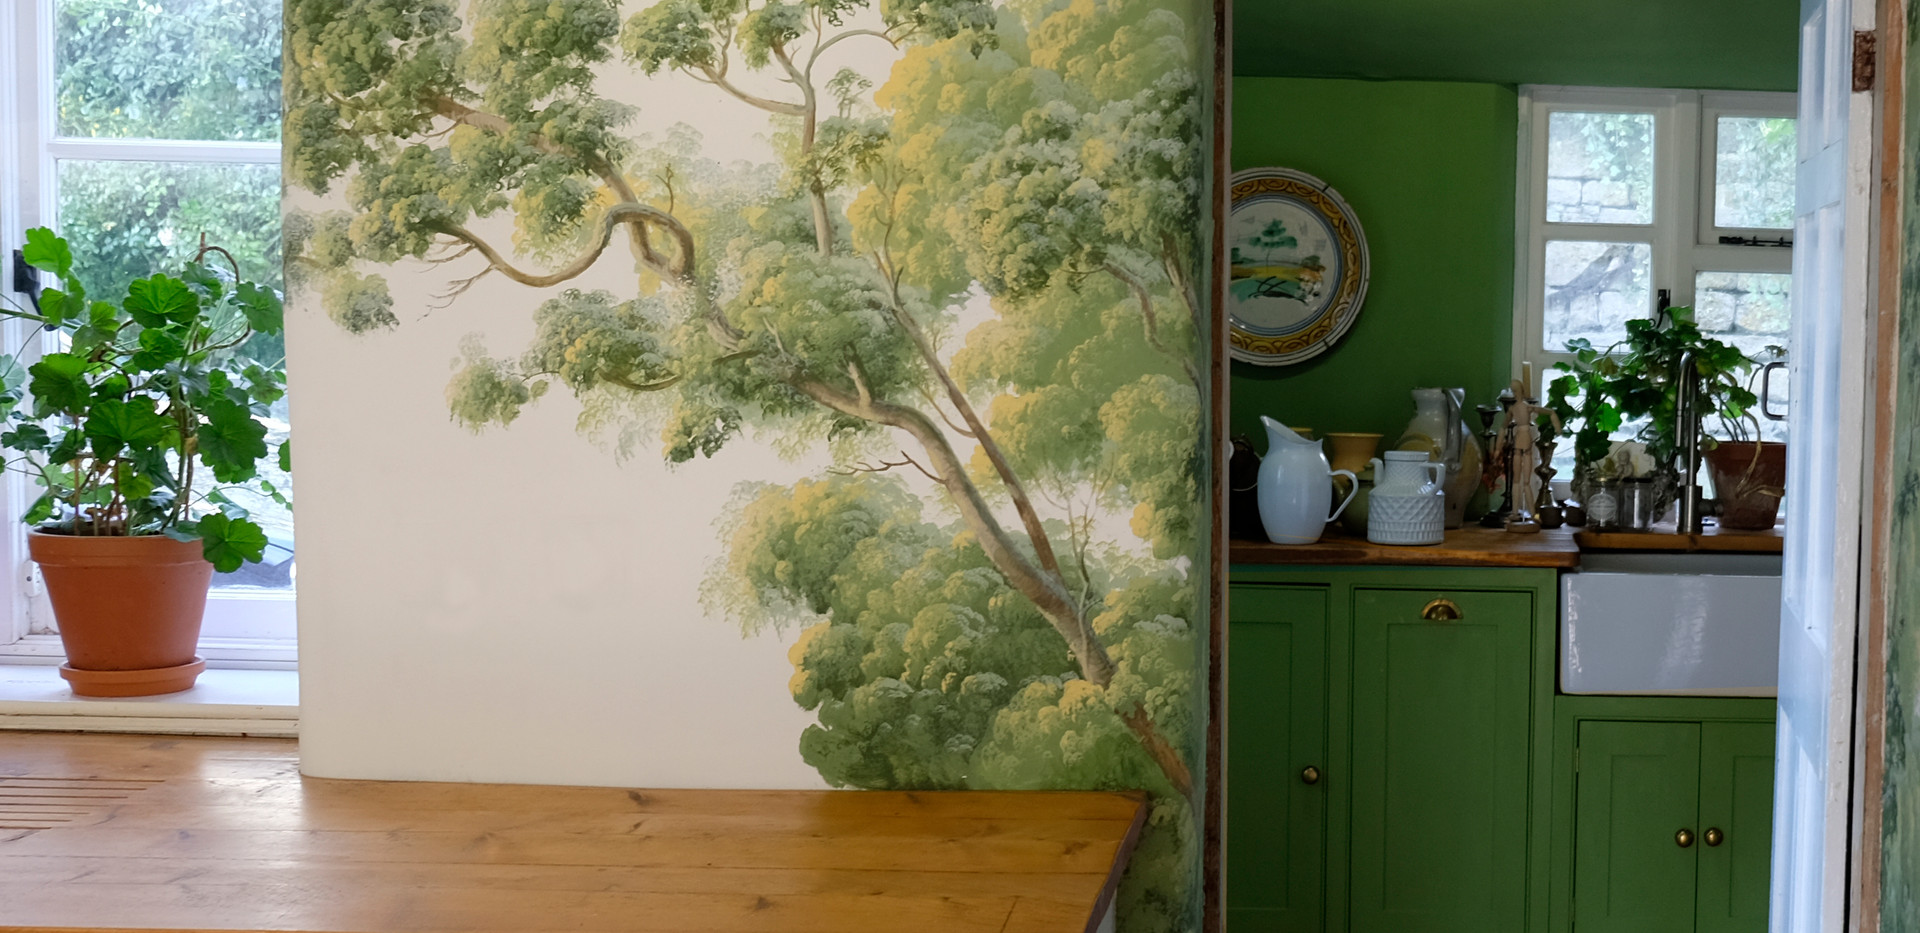 The precise green was taken from that of the rather retro feeling of the laundry room.